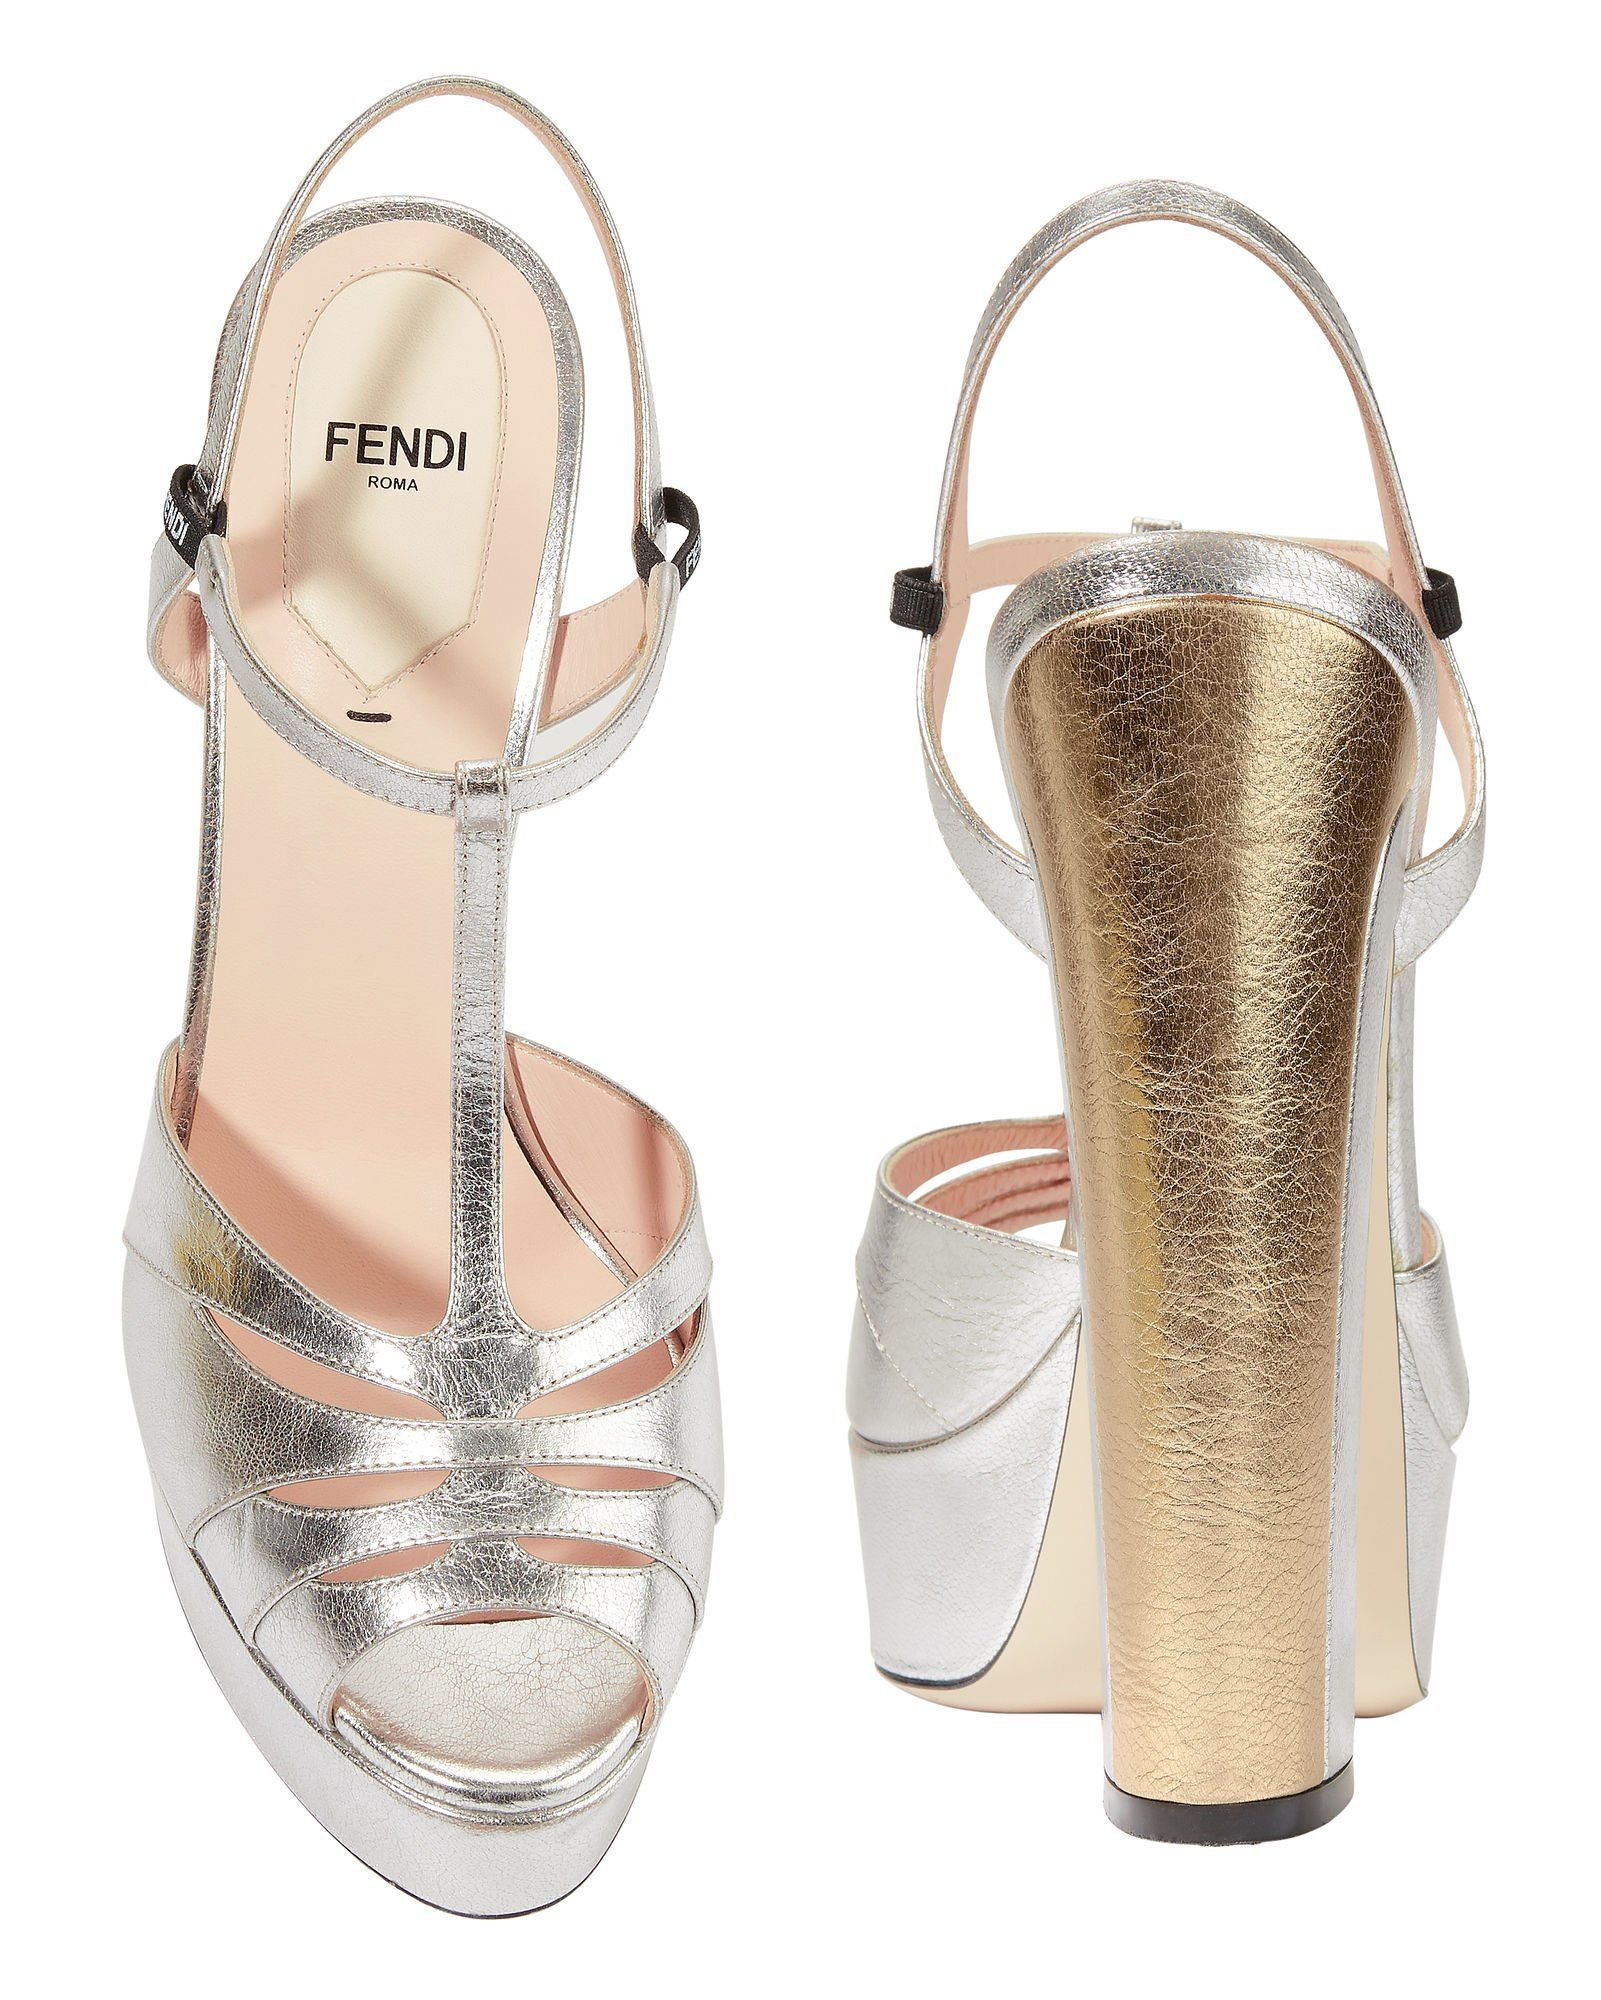 d4e392a42109 Fendi Duo Platform Heel A color blocked heel furthers the  attention-grabbing style of these